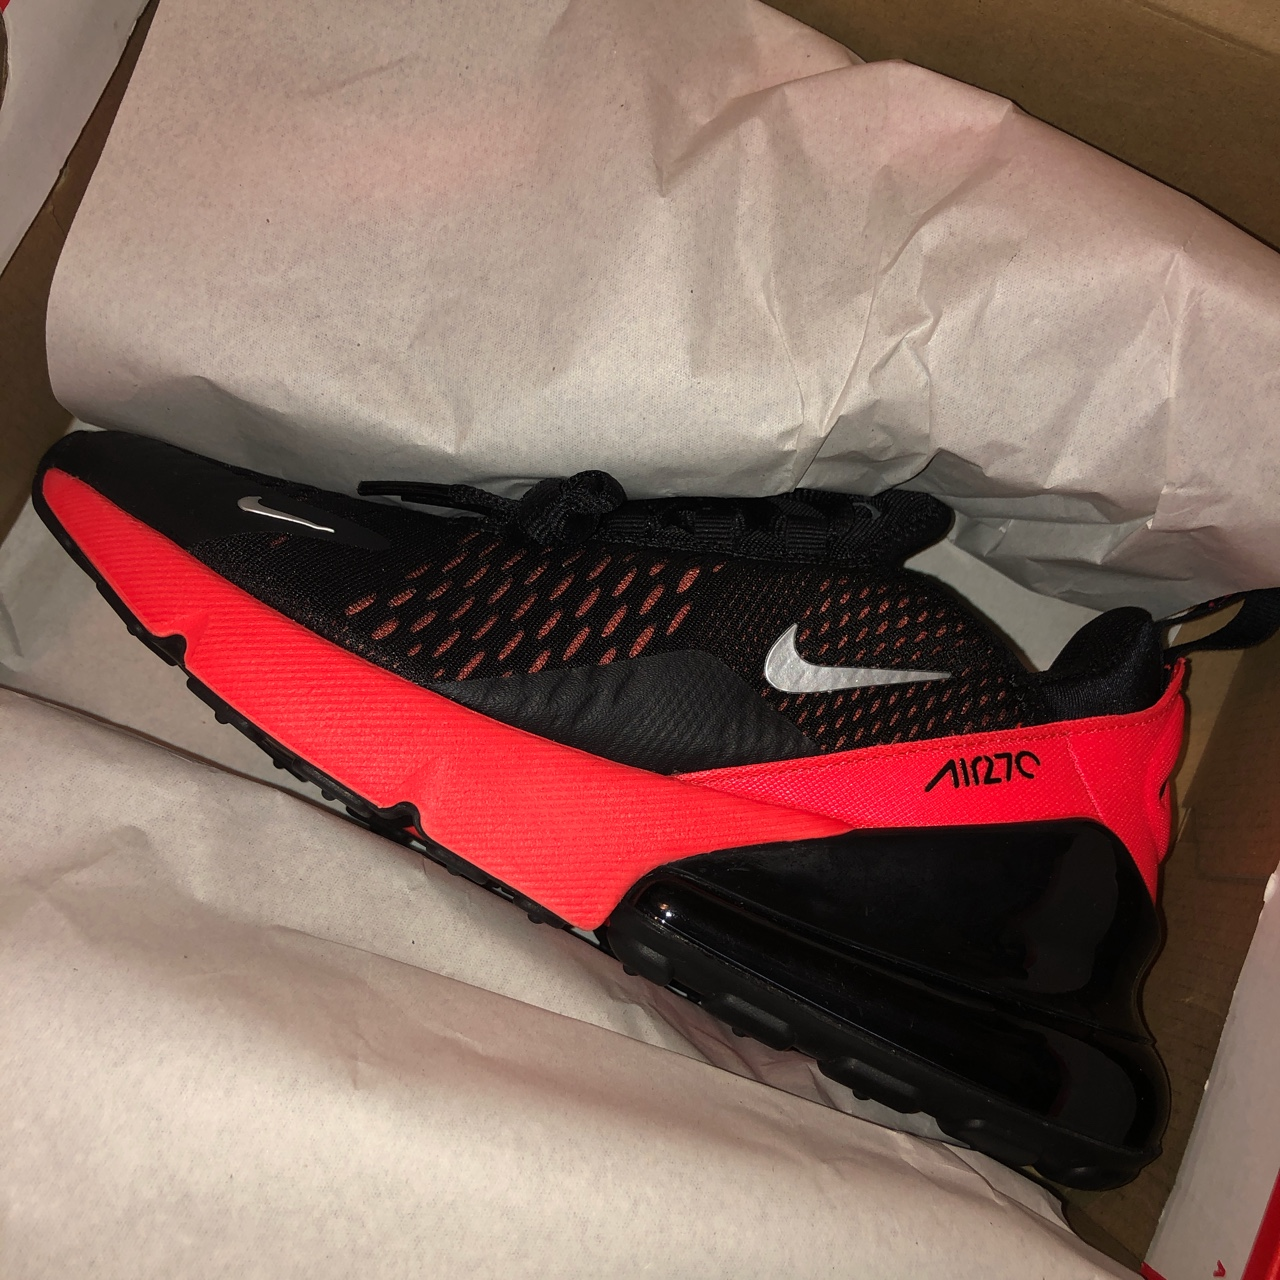 🖤 BLACK AND PINK NIKE AIRMAX 270s